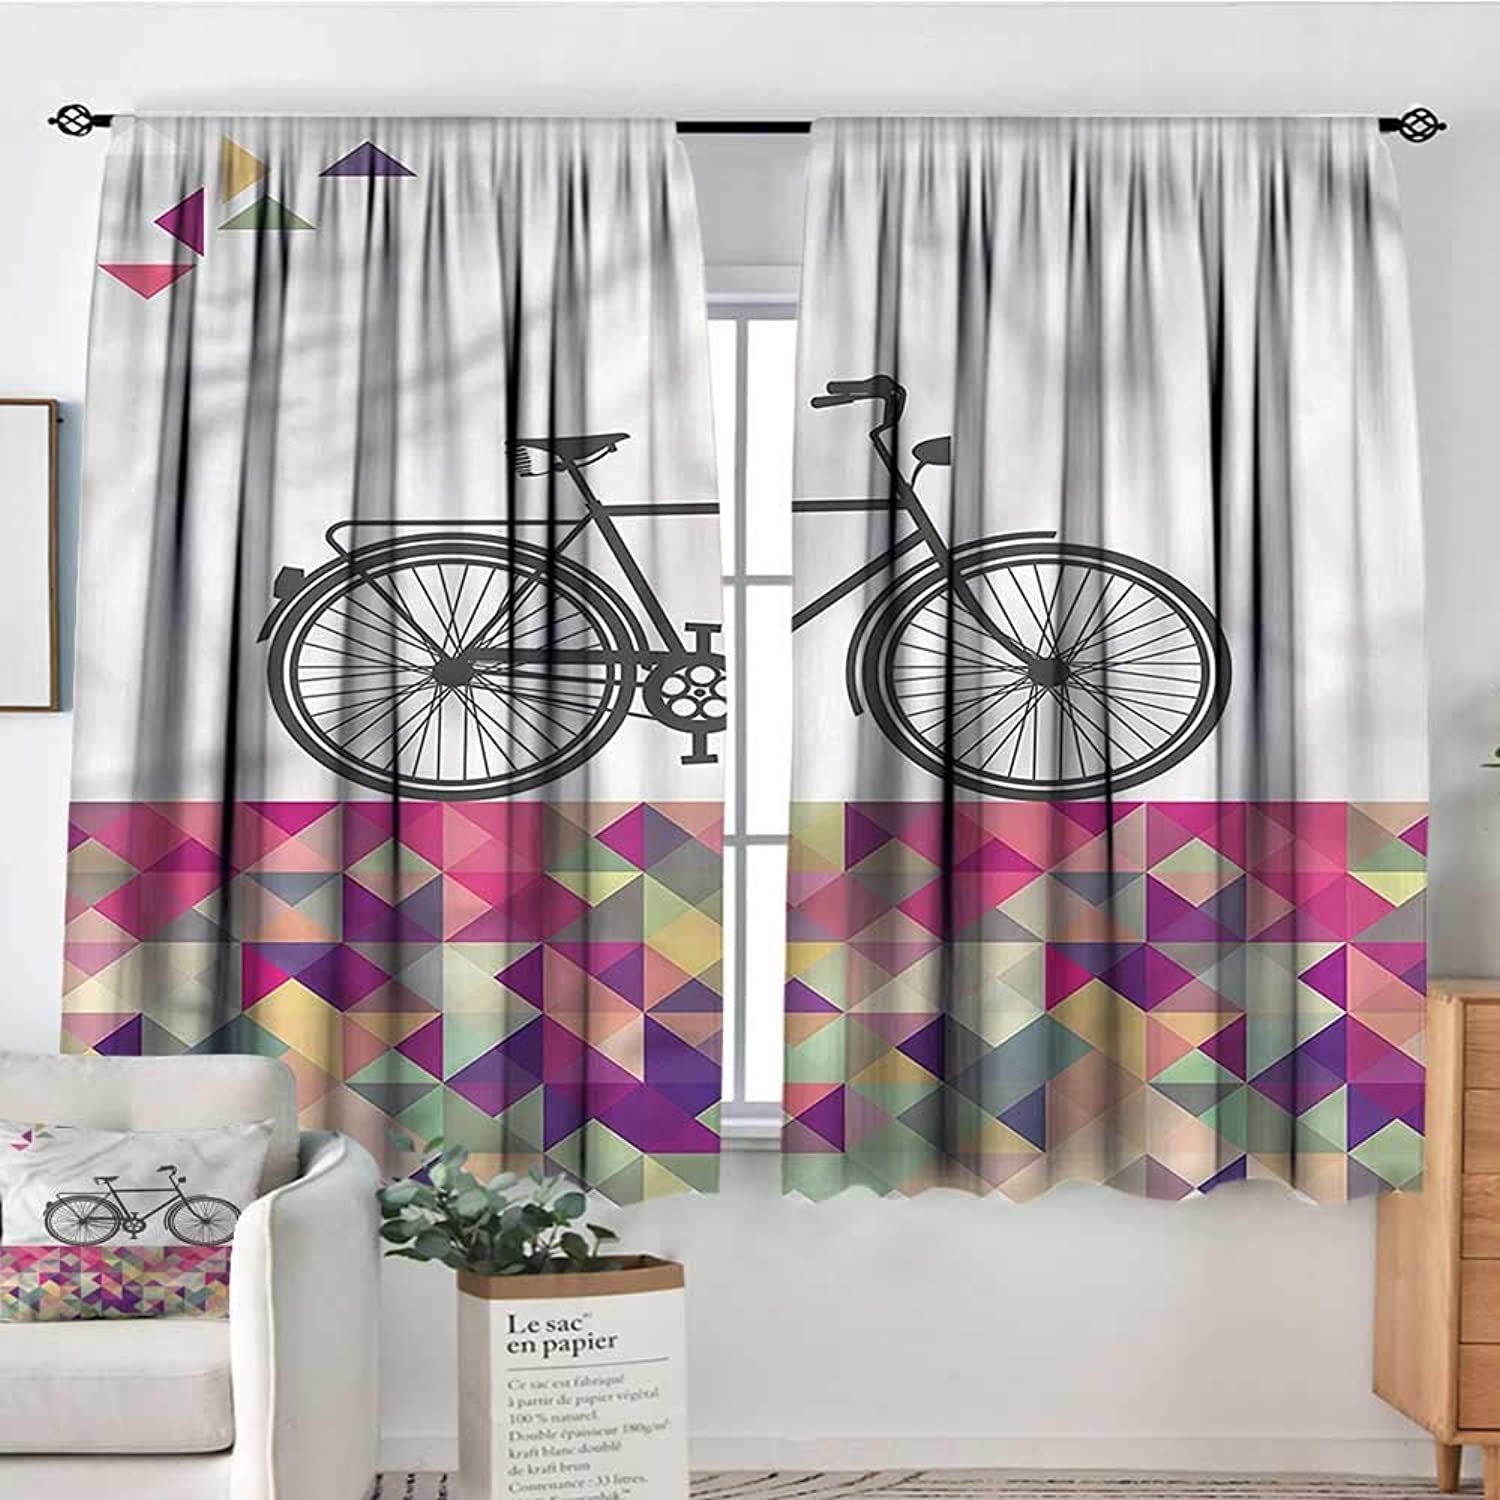 Sanring Geometric,Bocking Ight Rod Curtains Bike Over color Mosaic 52 x63  for Baby Bedroom